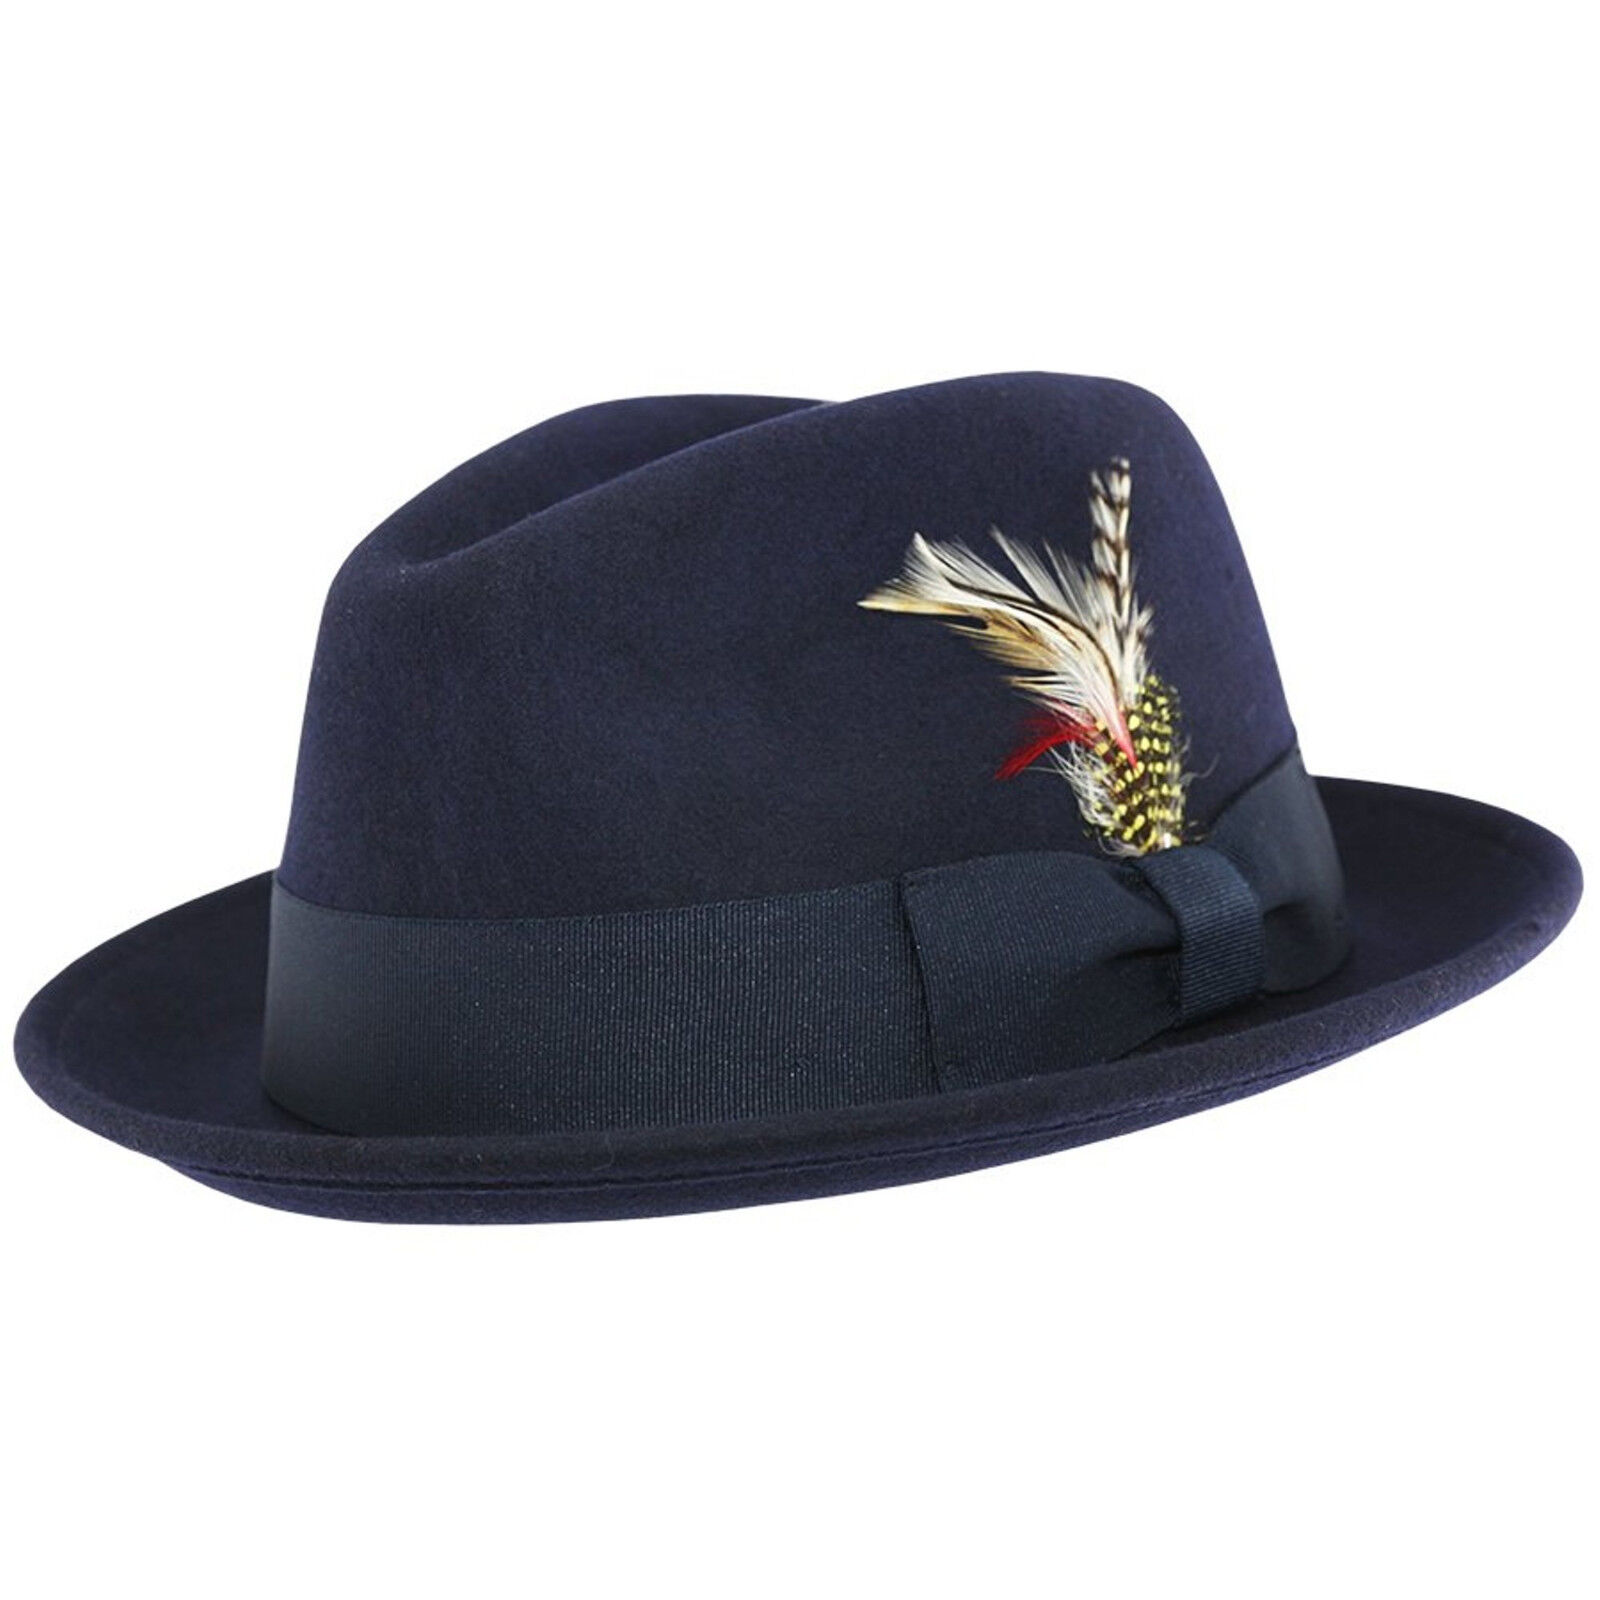 b06a2337 Crushable C-Crown 100% Wool Felt Fedora Trilby Hat With Removable Feather